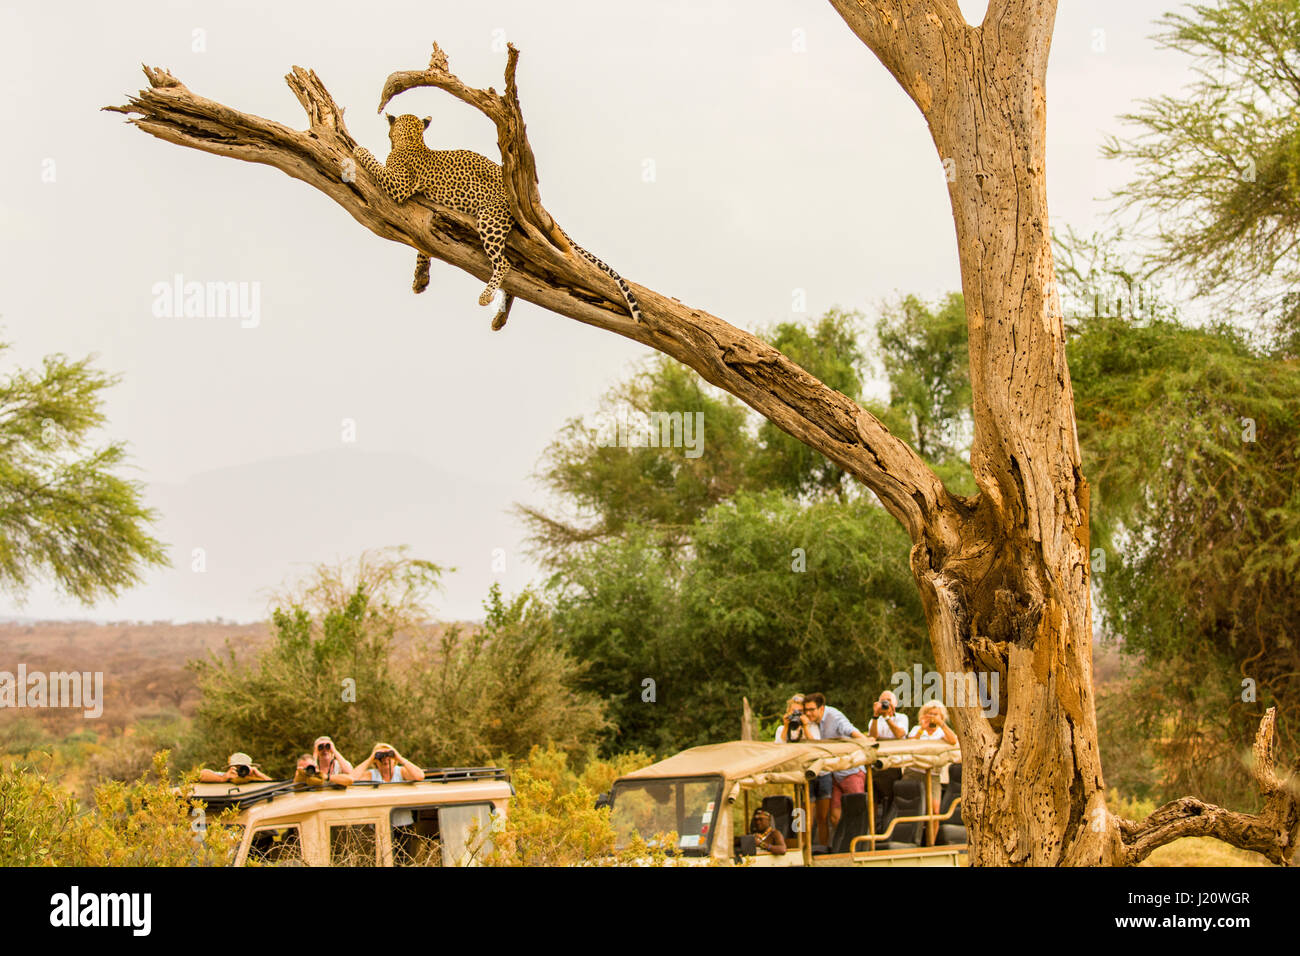 Tourists in safari vehicles watching an African Leopard, Panthera pardus, up in a tree in the Buffalo Springs Game - Stock Image